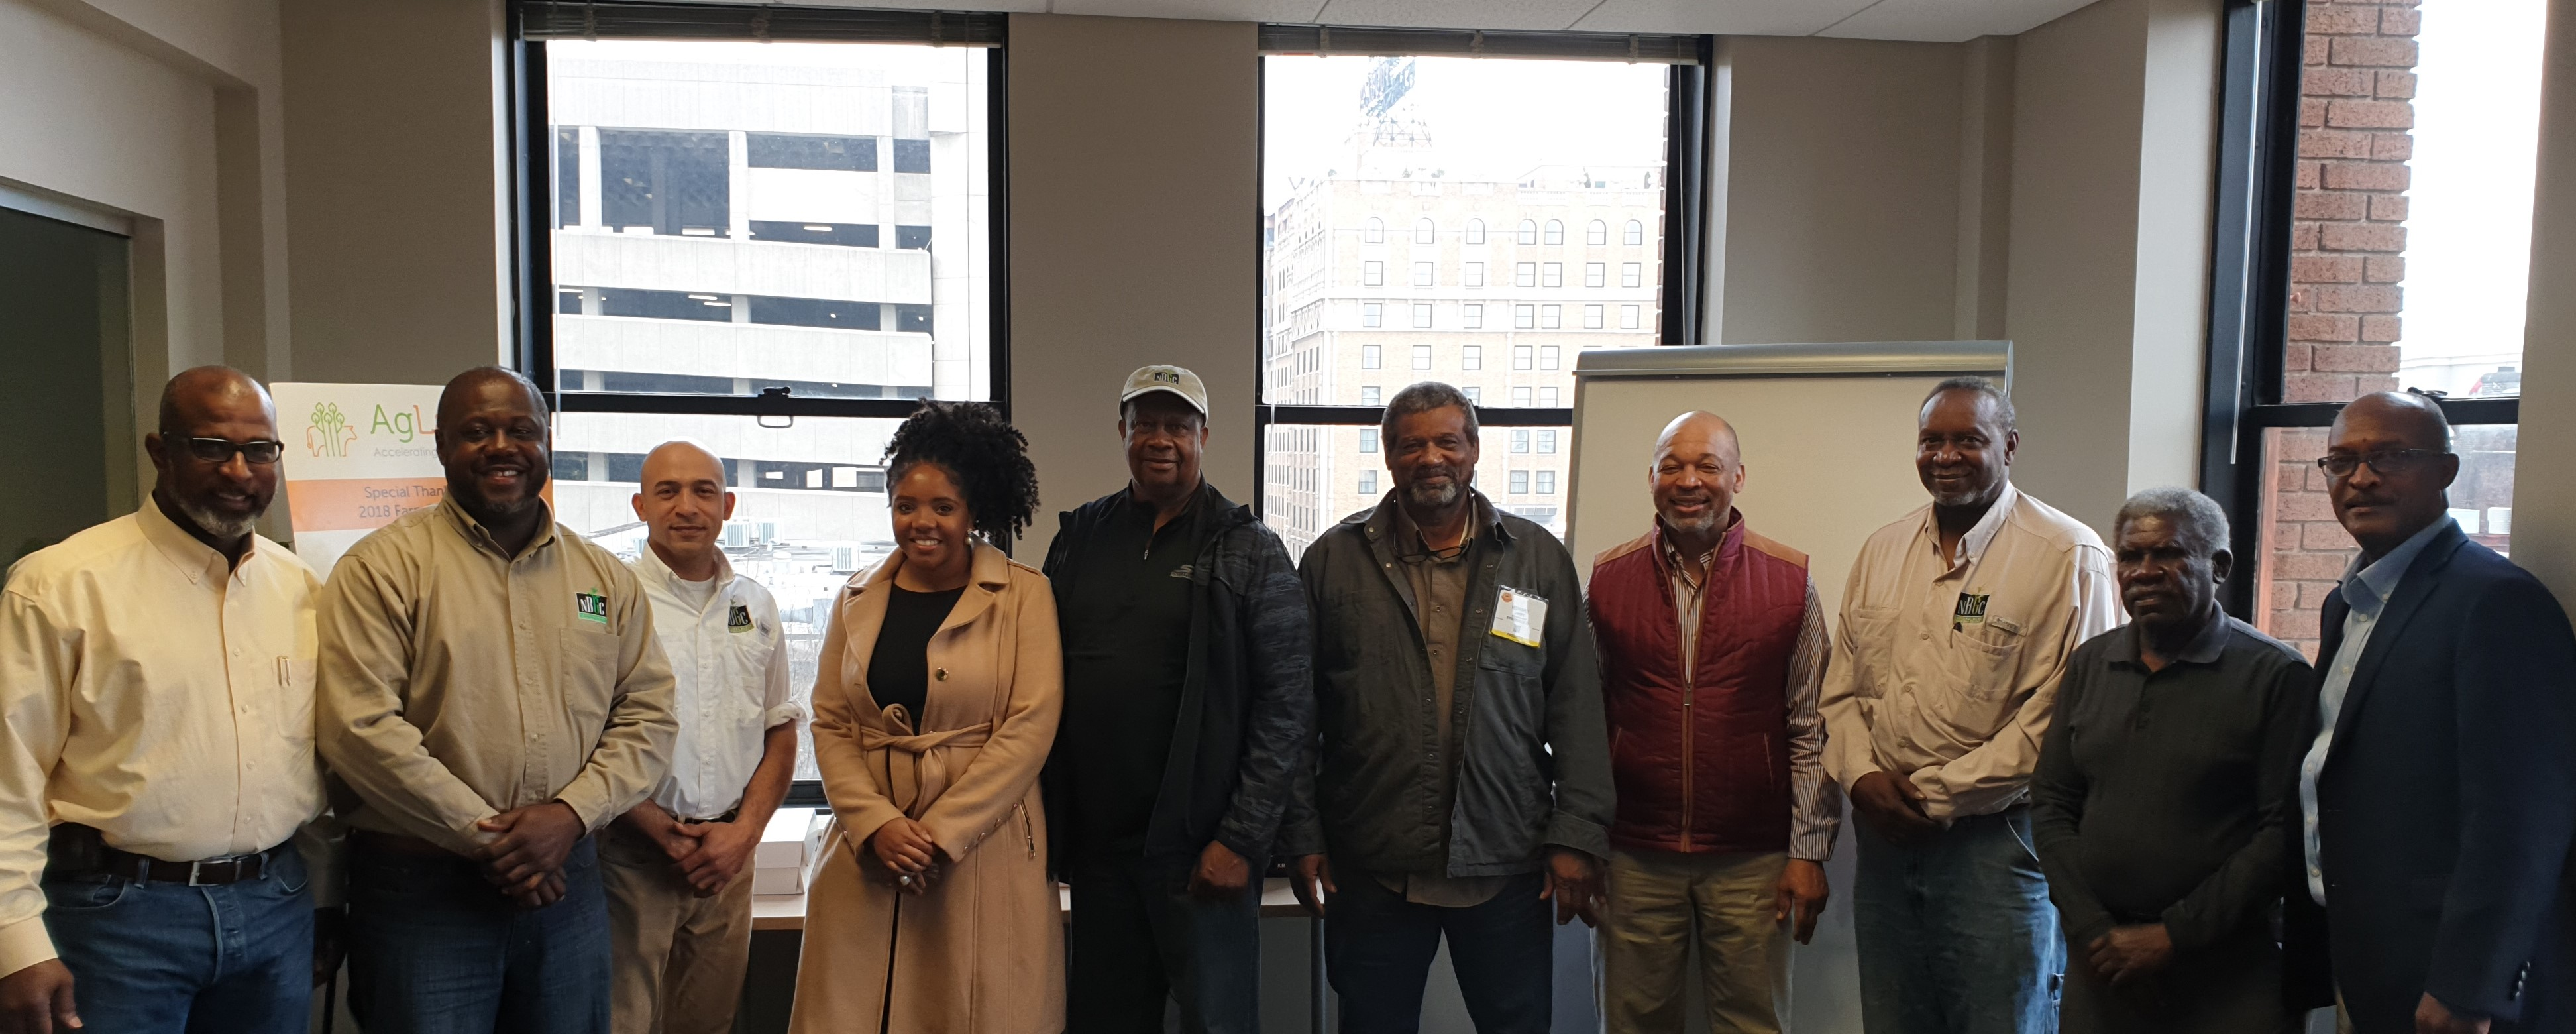 2019 NBGC Board Spring Meeting Group (2)